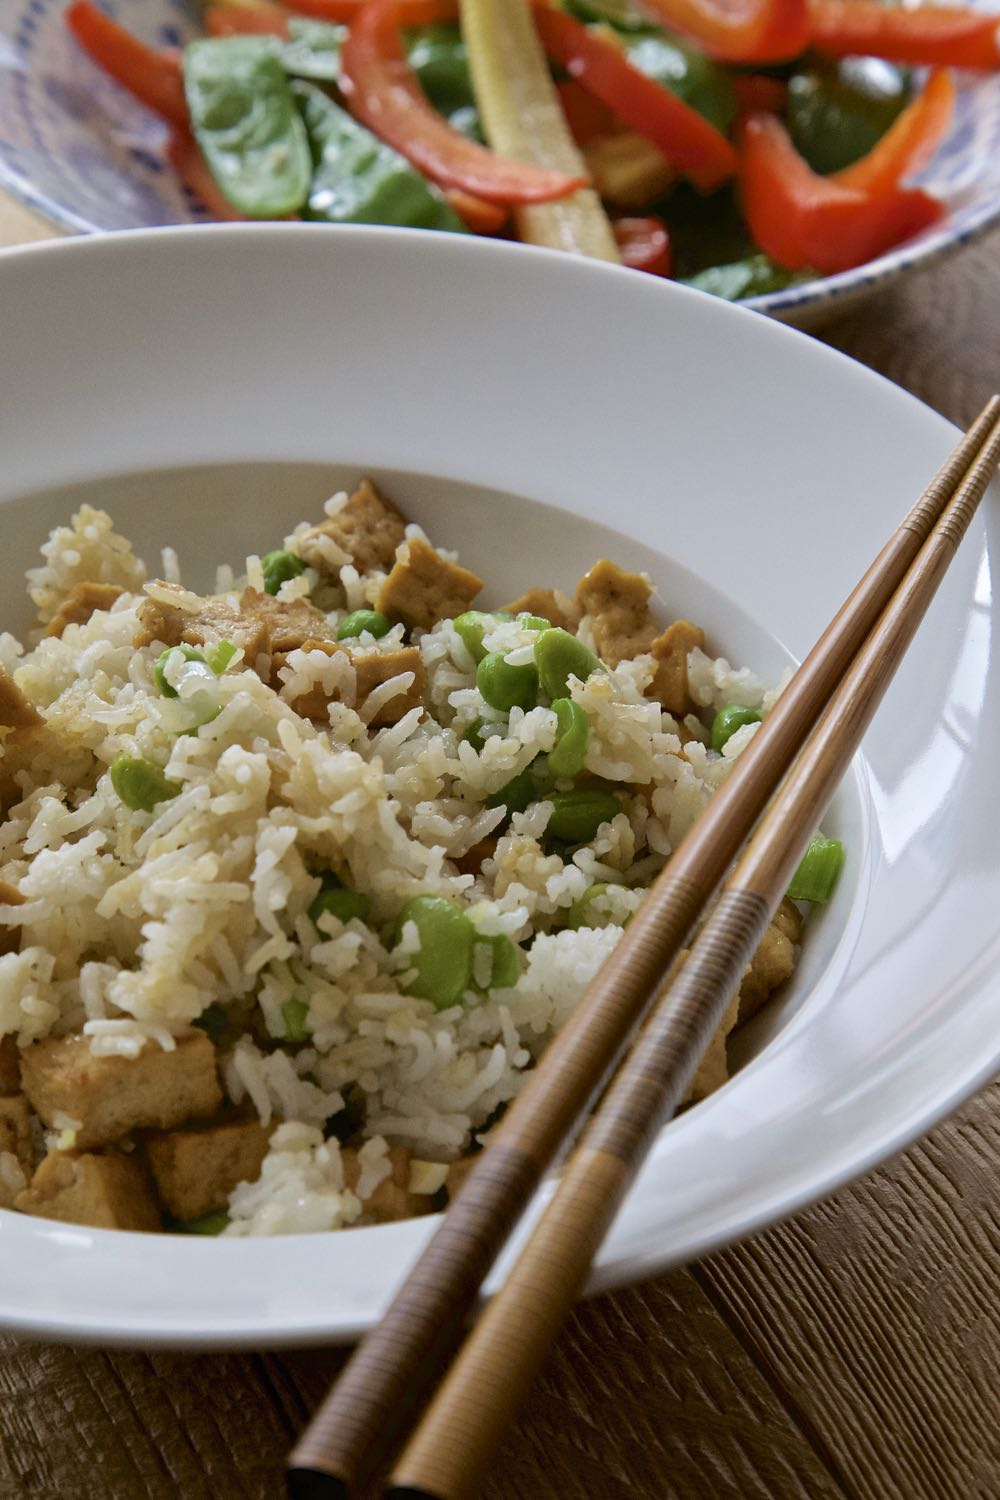 Easy Vegan Fried Rice with Tofu Pieces